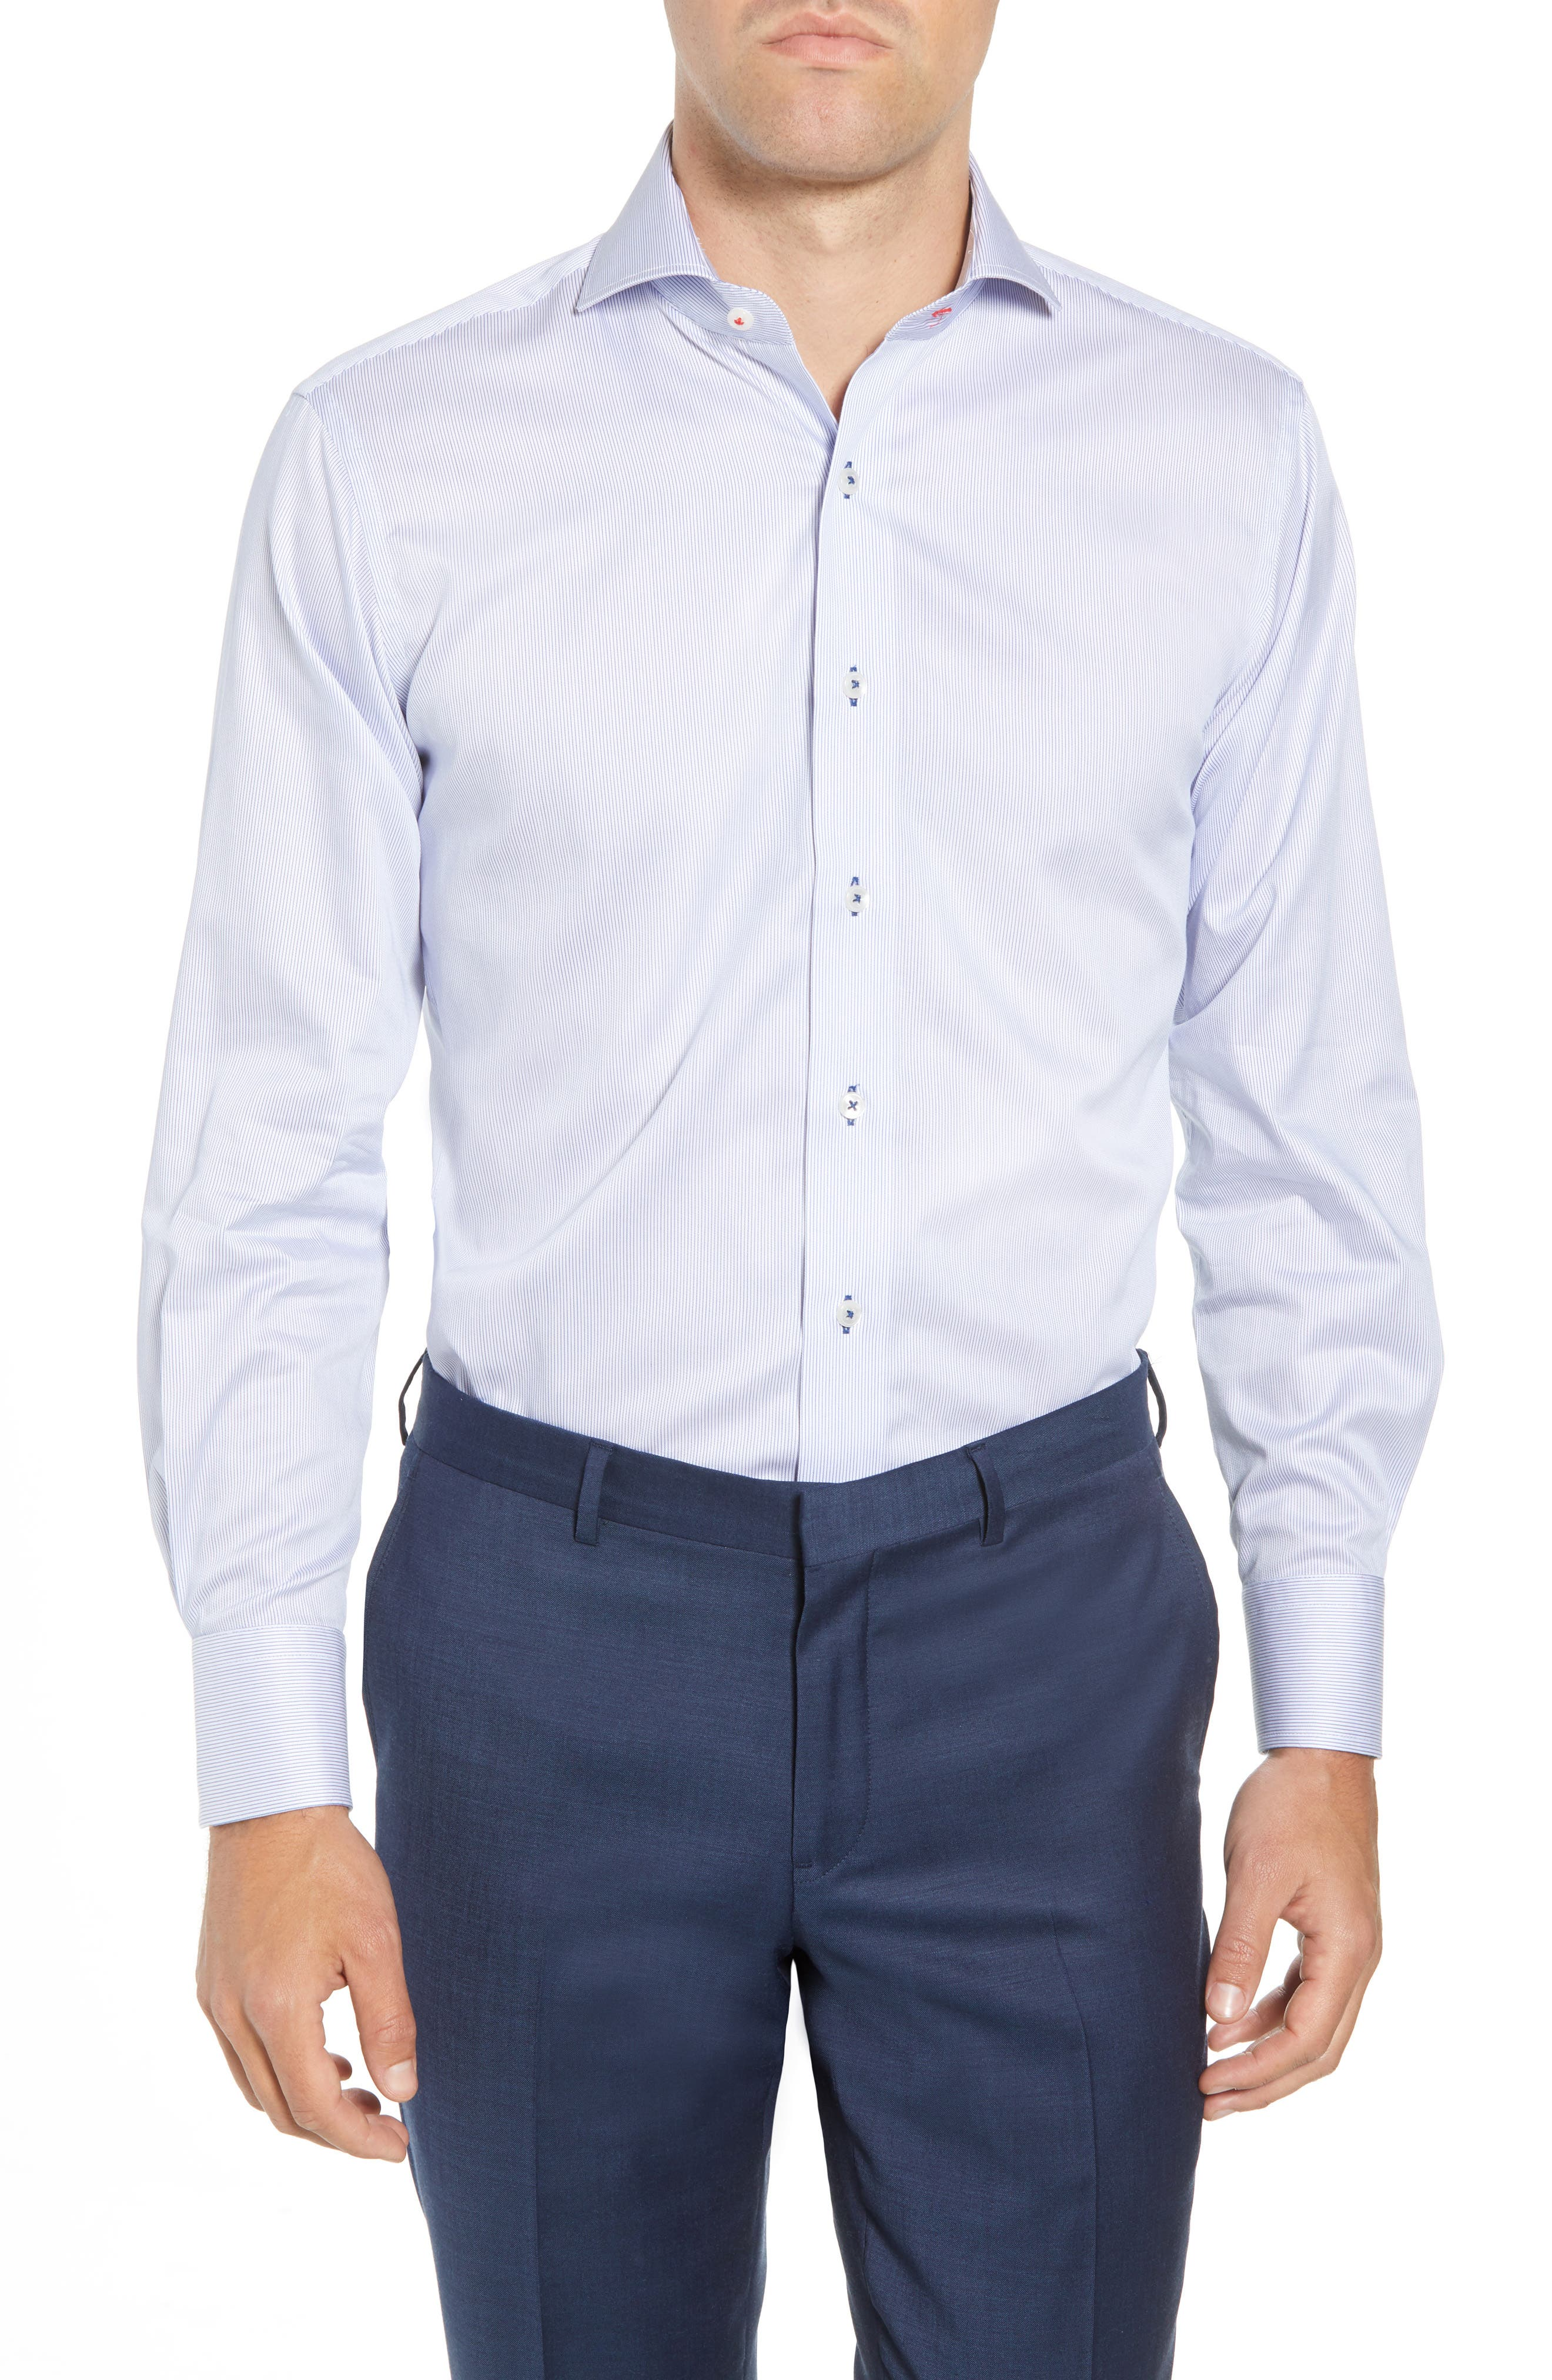 Trim Fit Stripe Dress Shirt,                             Main thumbnail 1, color,                             400